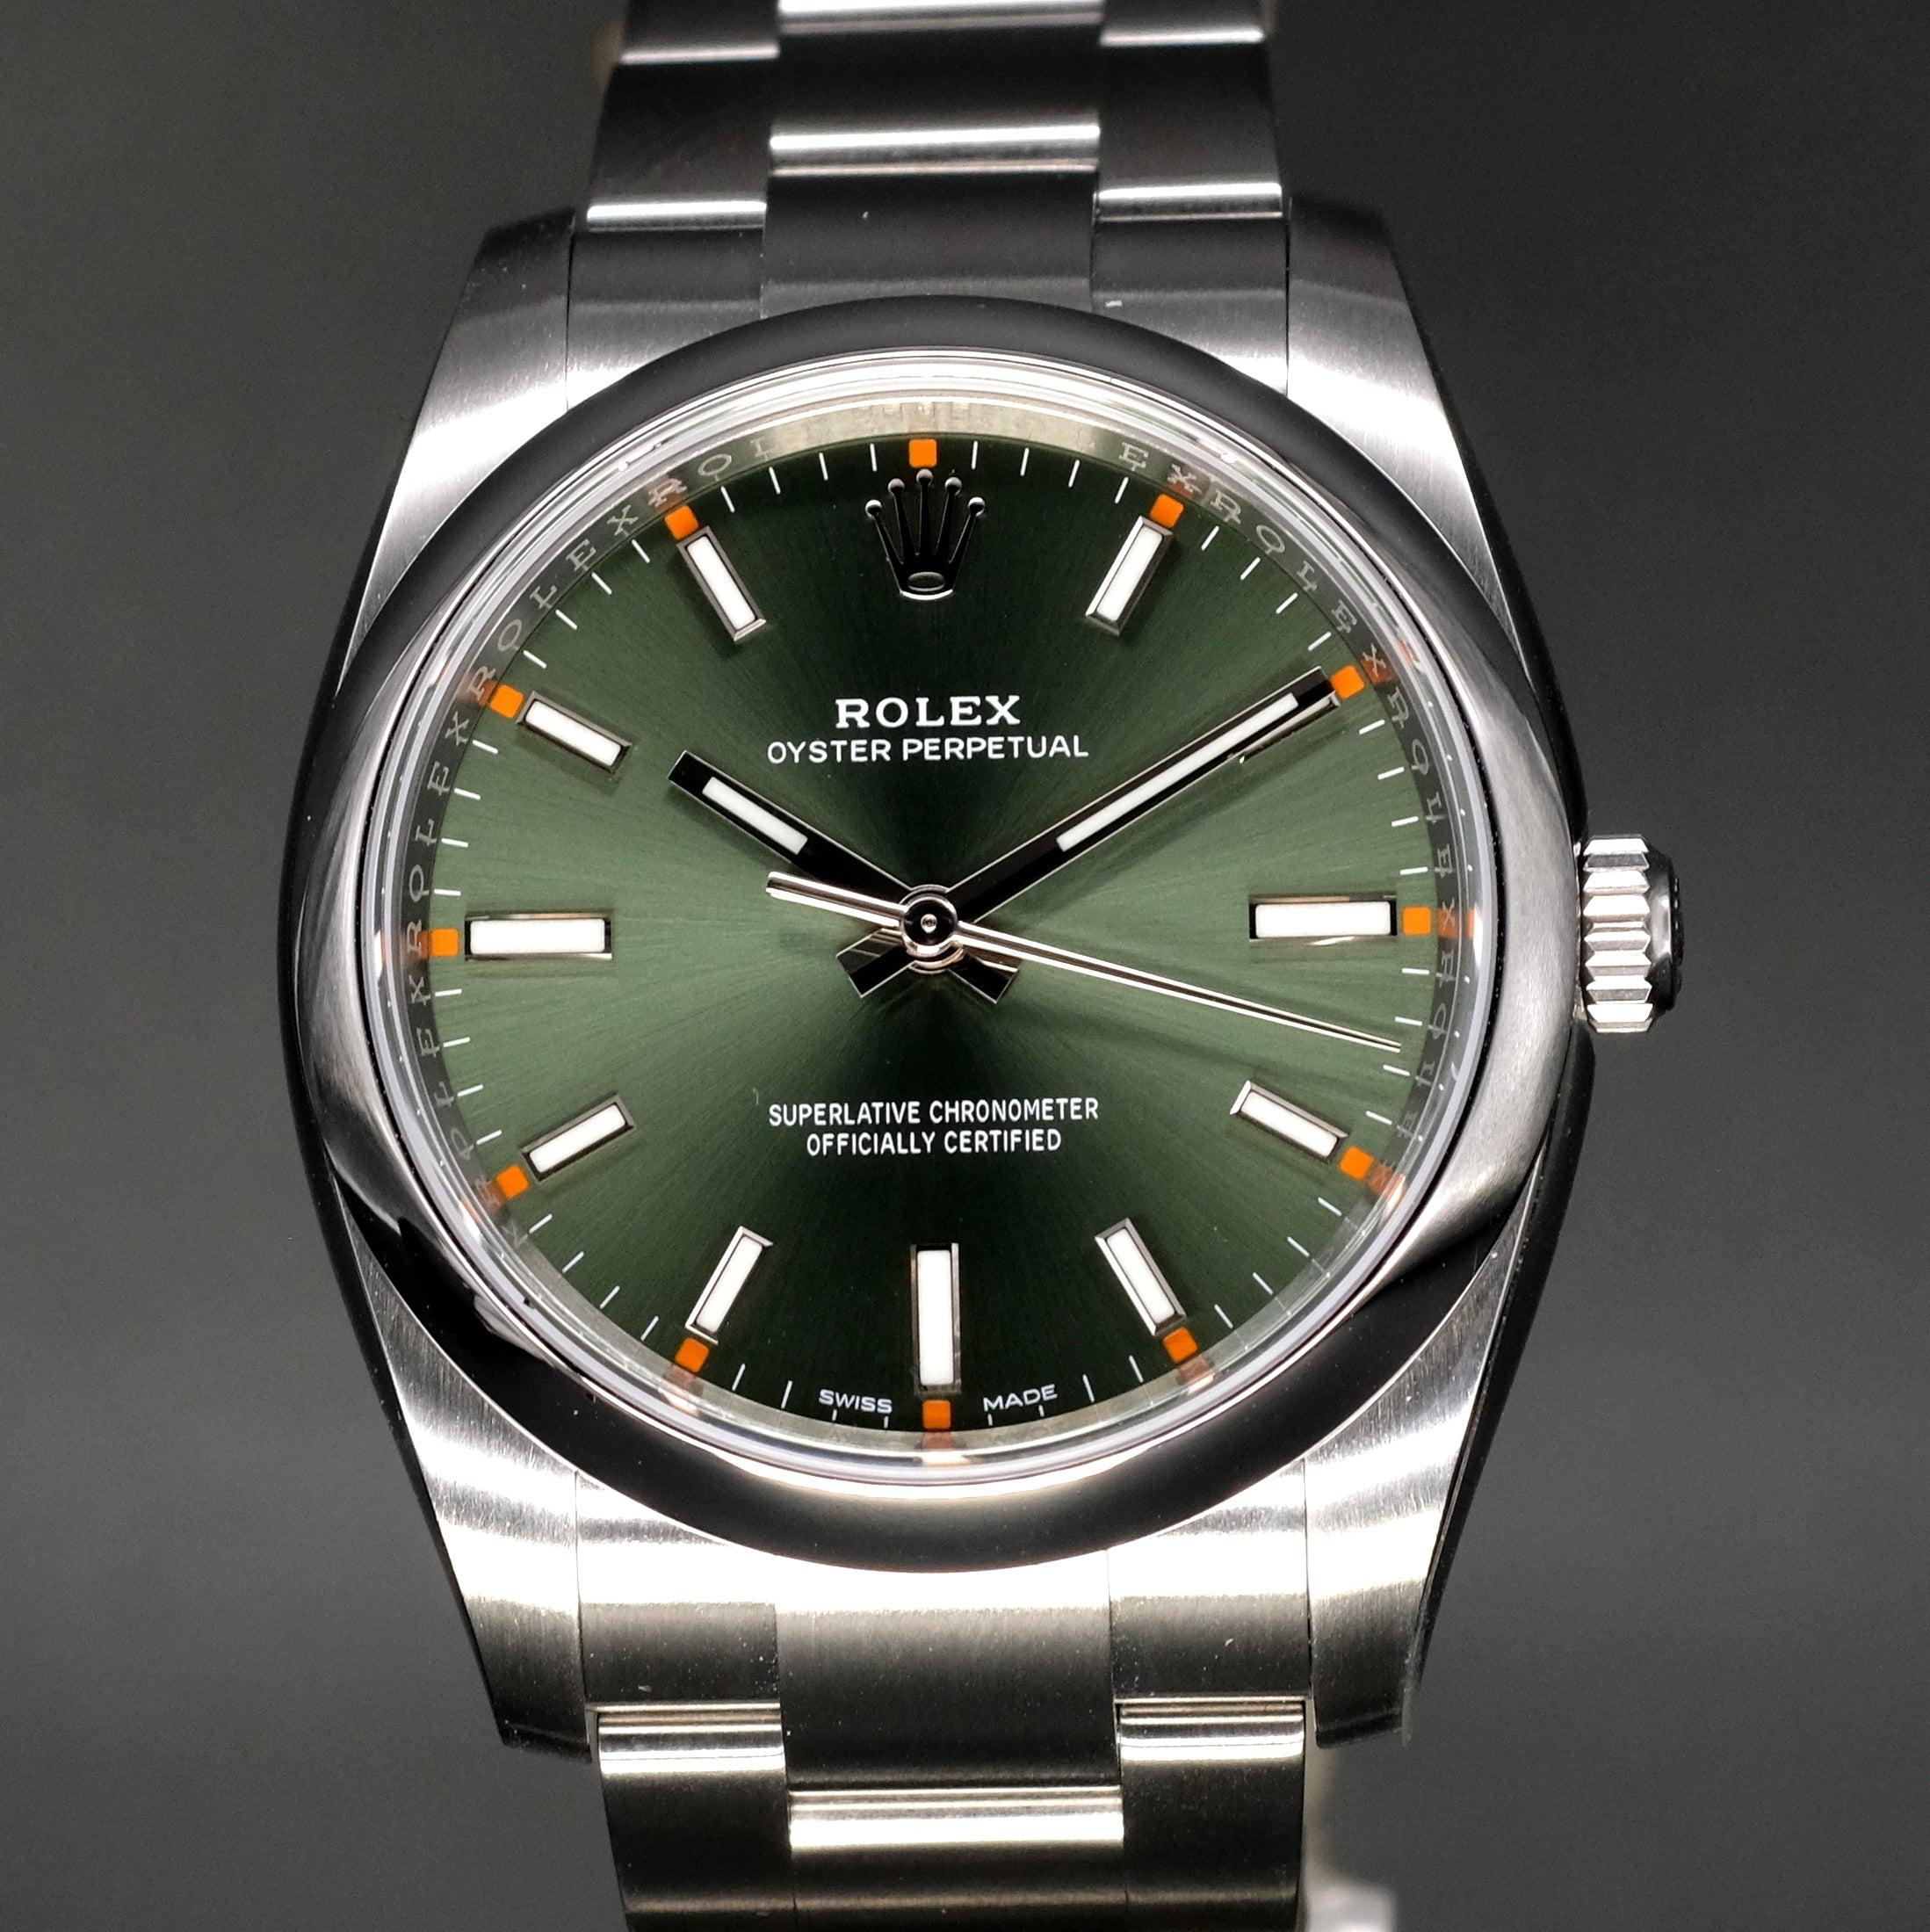 [Brand New Watch] Rolex Oyster Perpetual 34mm 114200 Olive Green Dial